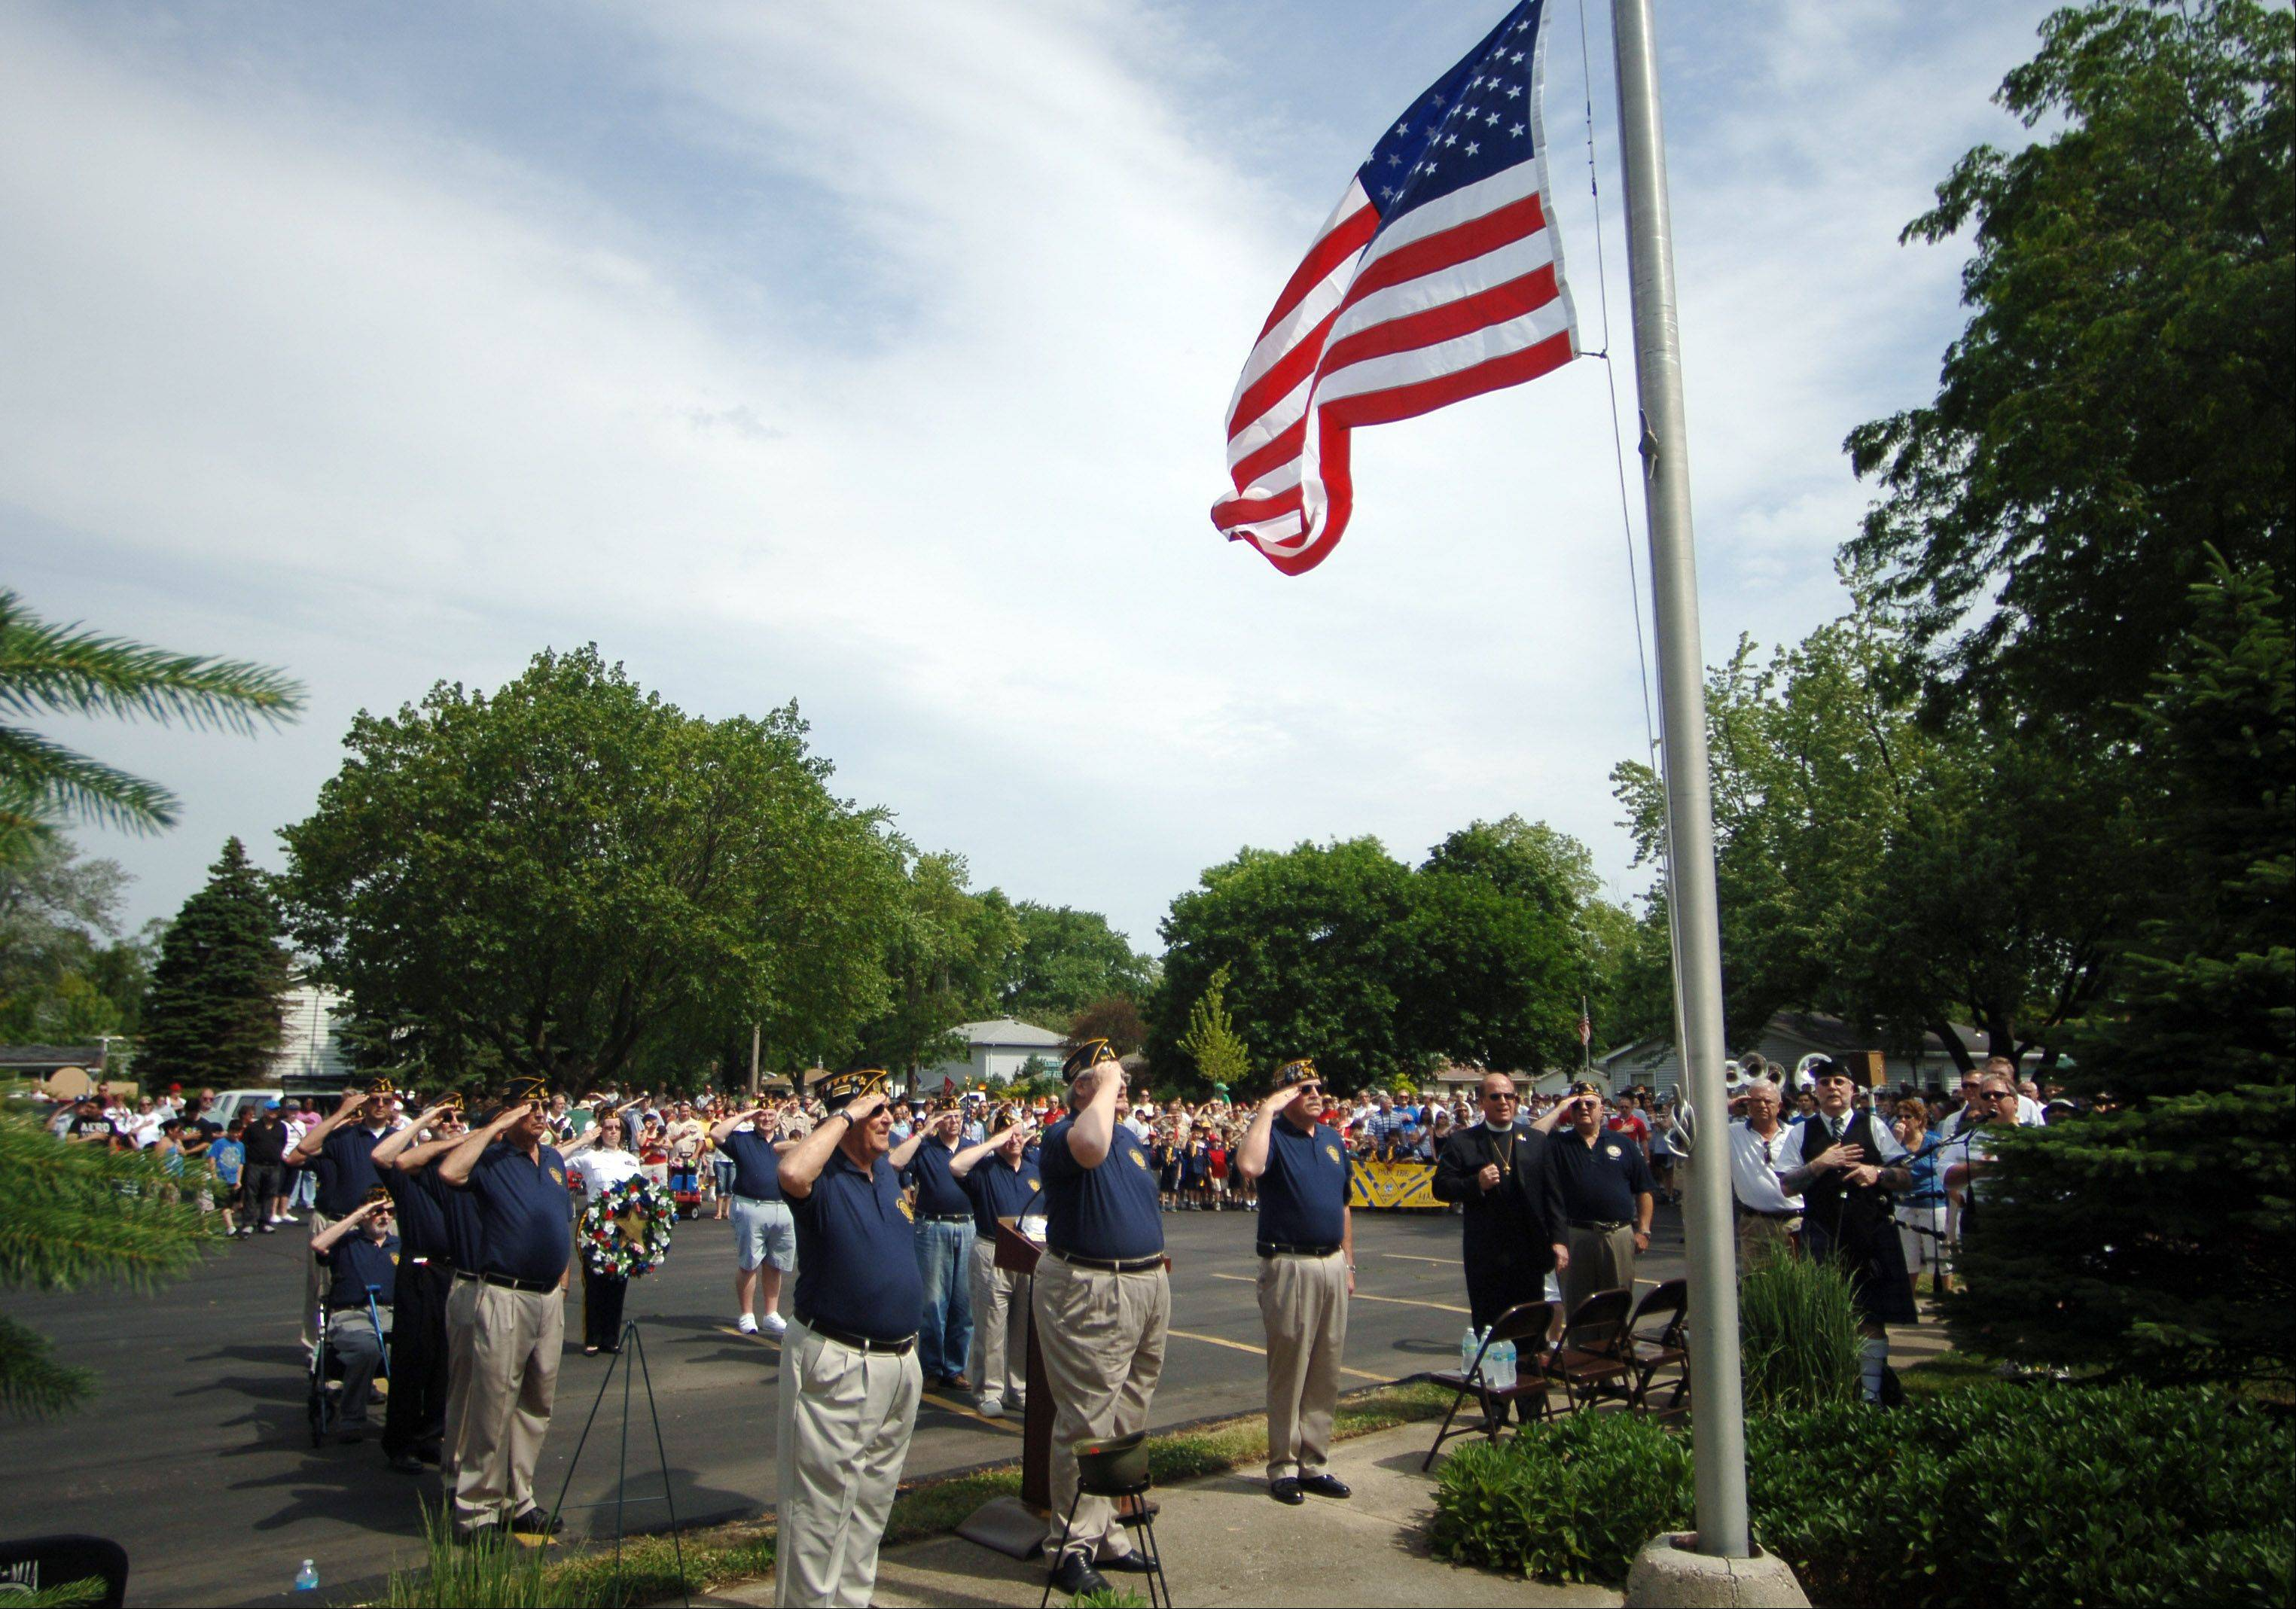 The village of Mundelein held their Memorial Day ceremony in Memorial Park on Monday.